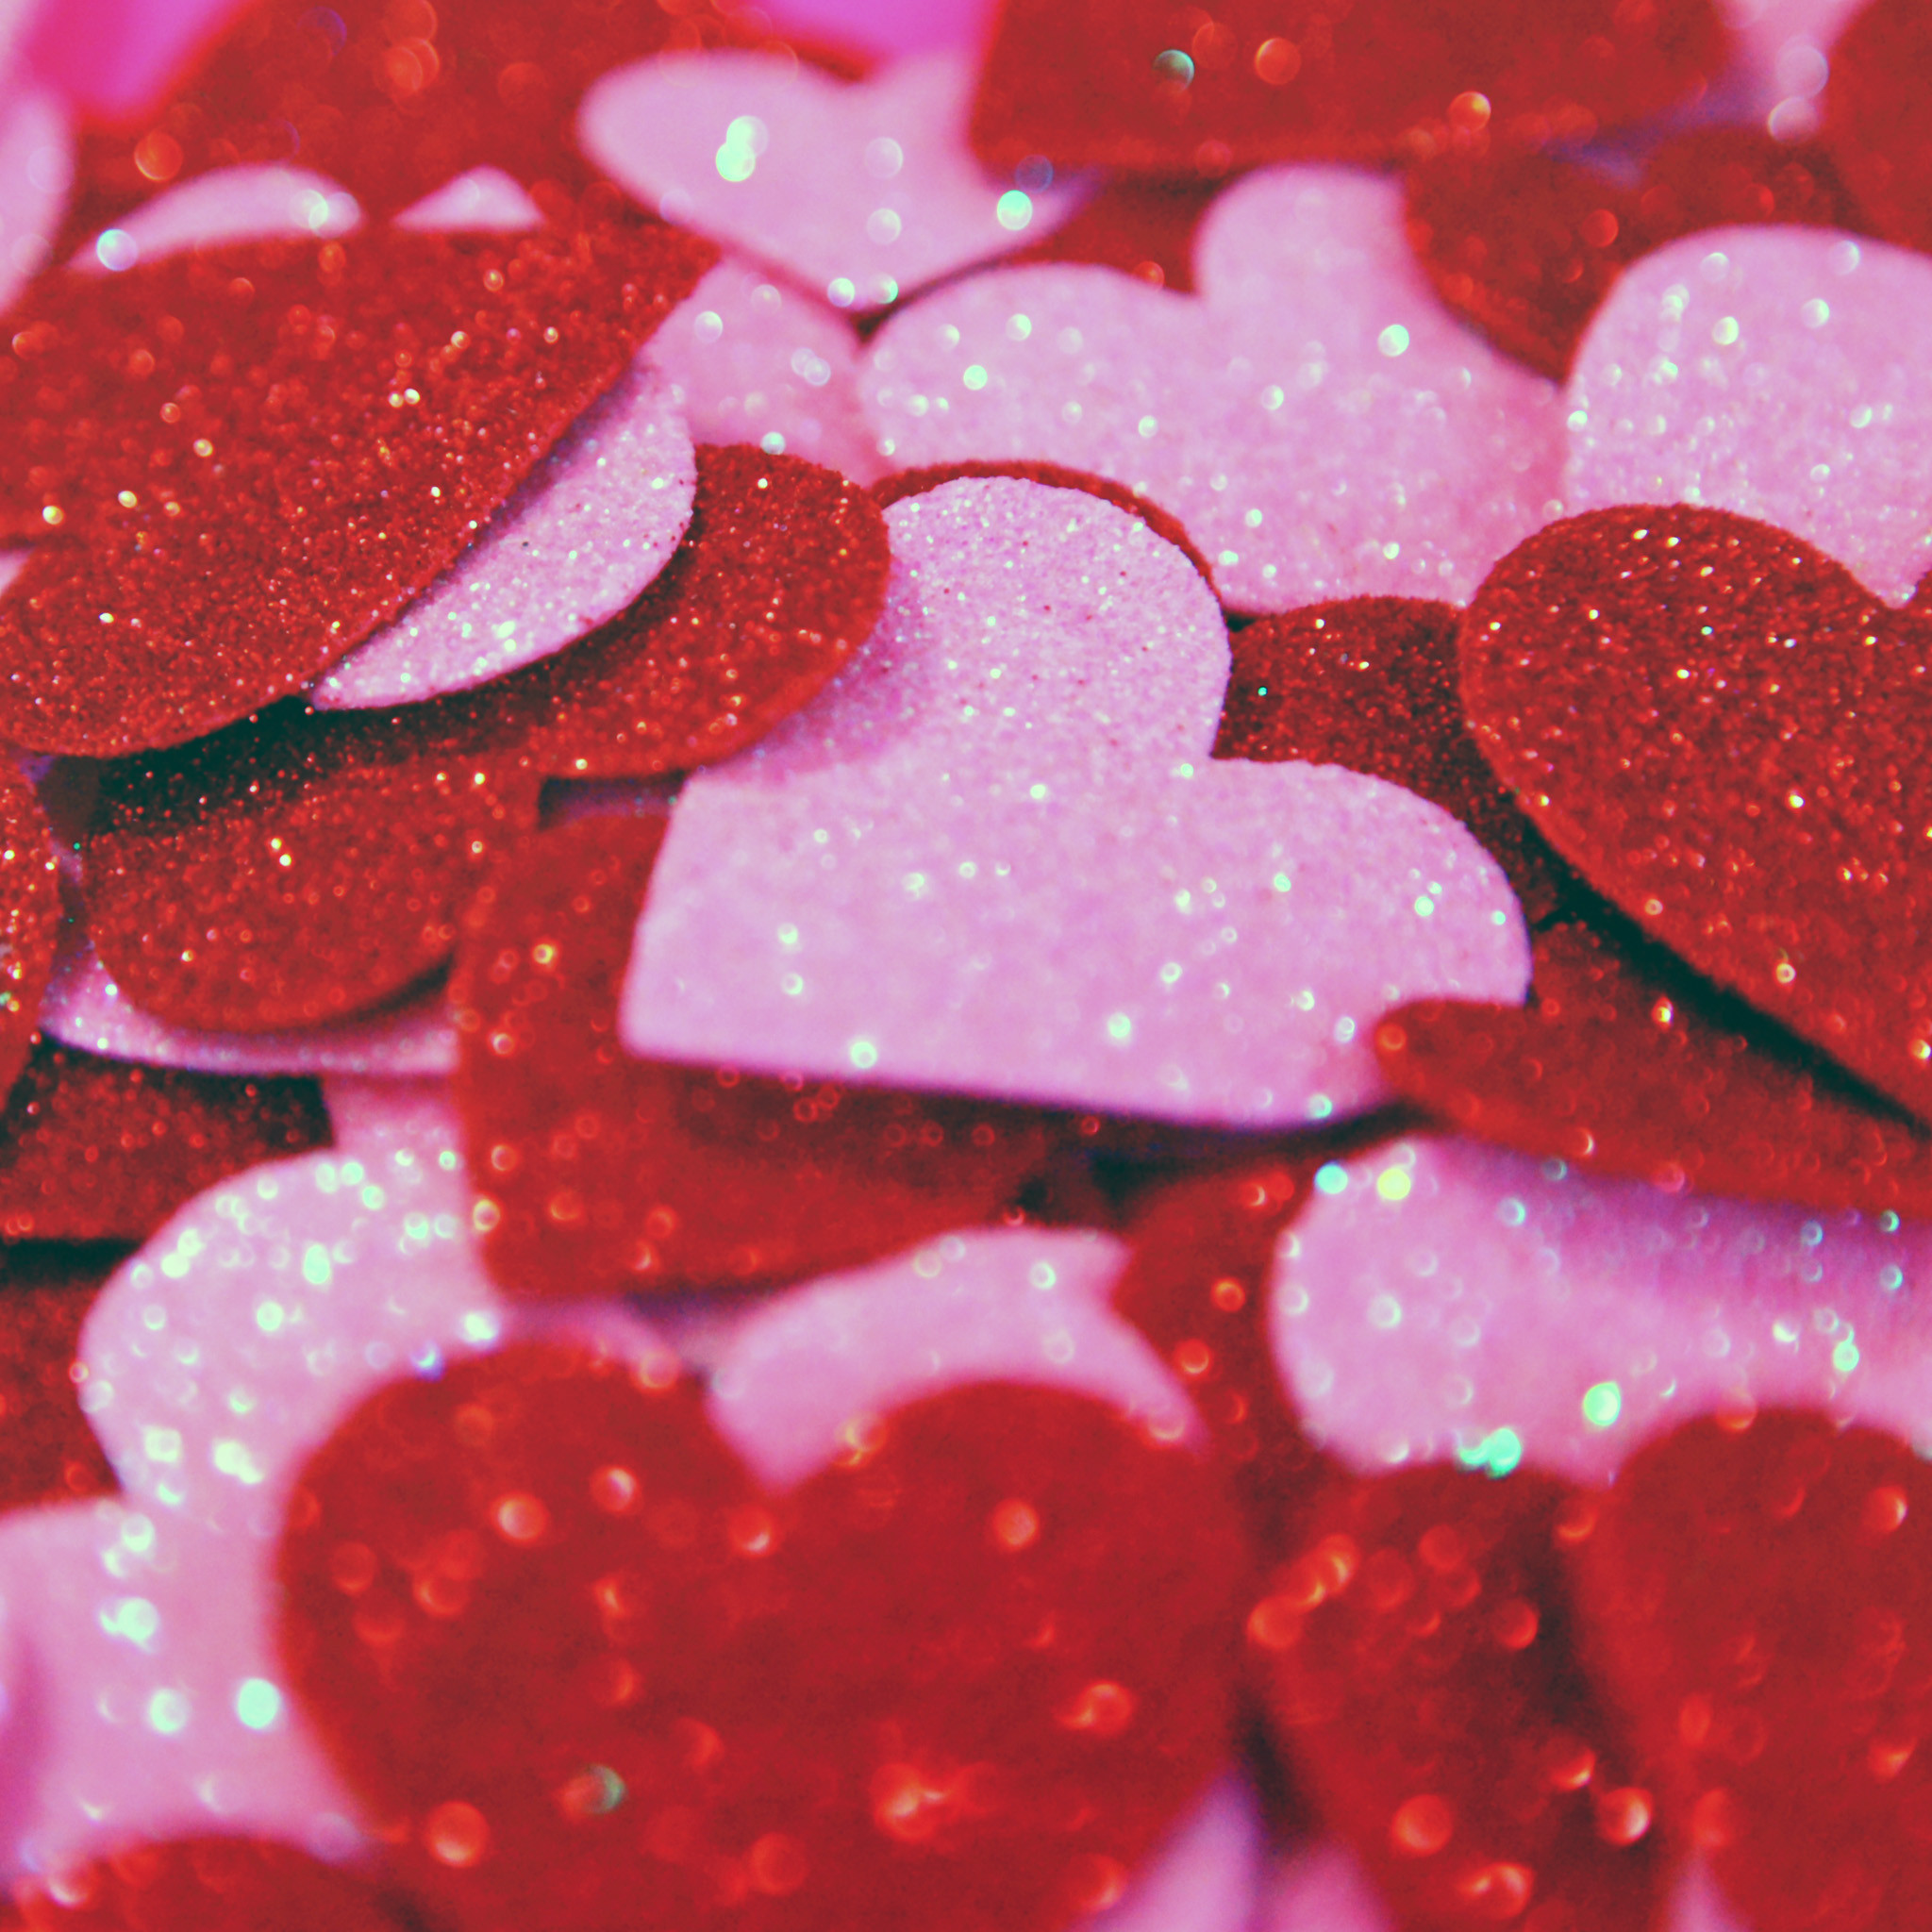 purple sherbet photography – pink red hearts ipad wallpaper